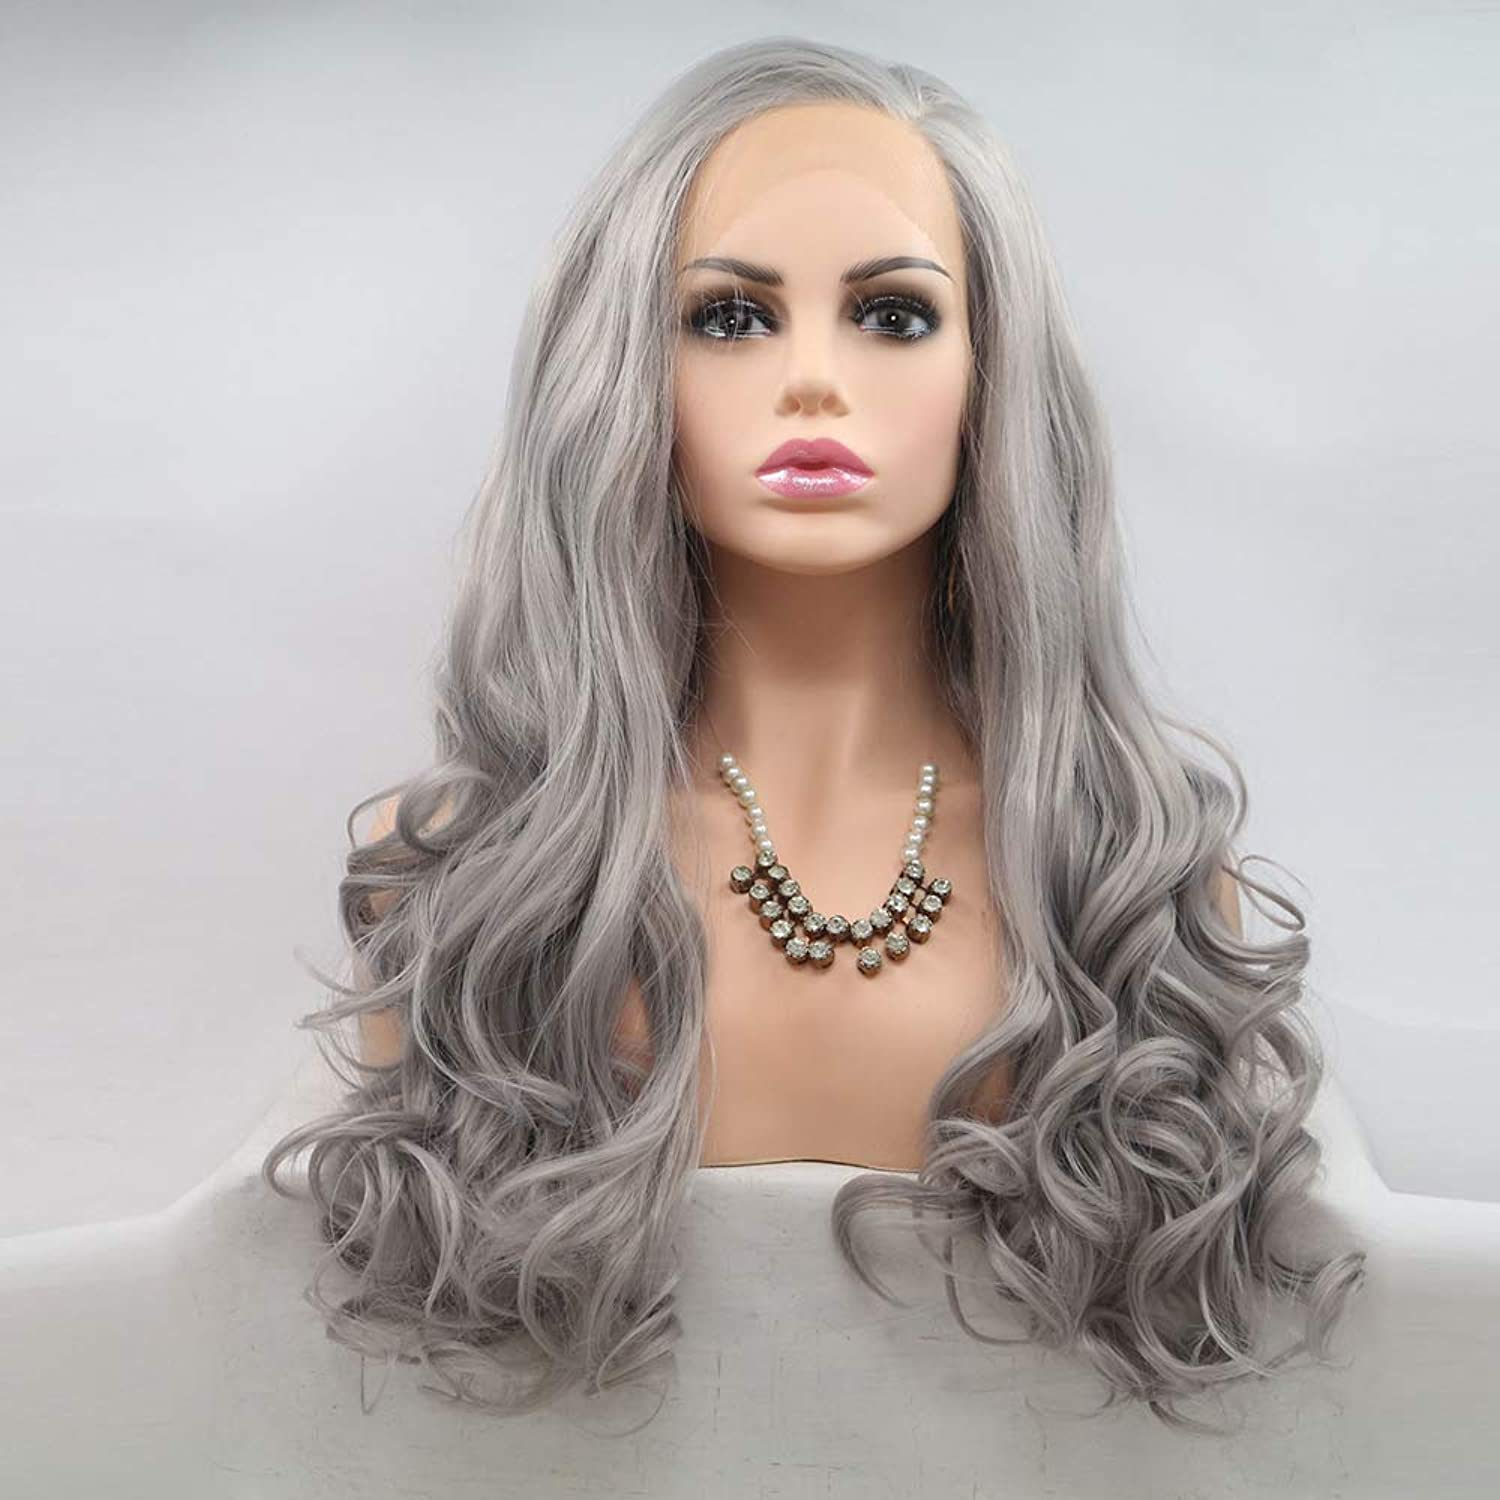 HXPH Long Wave Wigs Medium Length Bob Straight Synthetic Hair Full Wigs for Women Lace Wigs Heat Resistant Fiber Glueless Hair 183% Cosplay or Daily Use Wig for